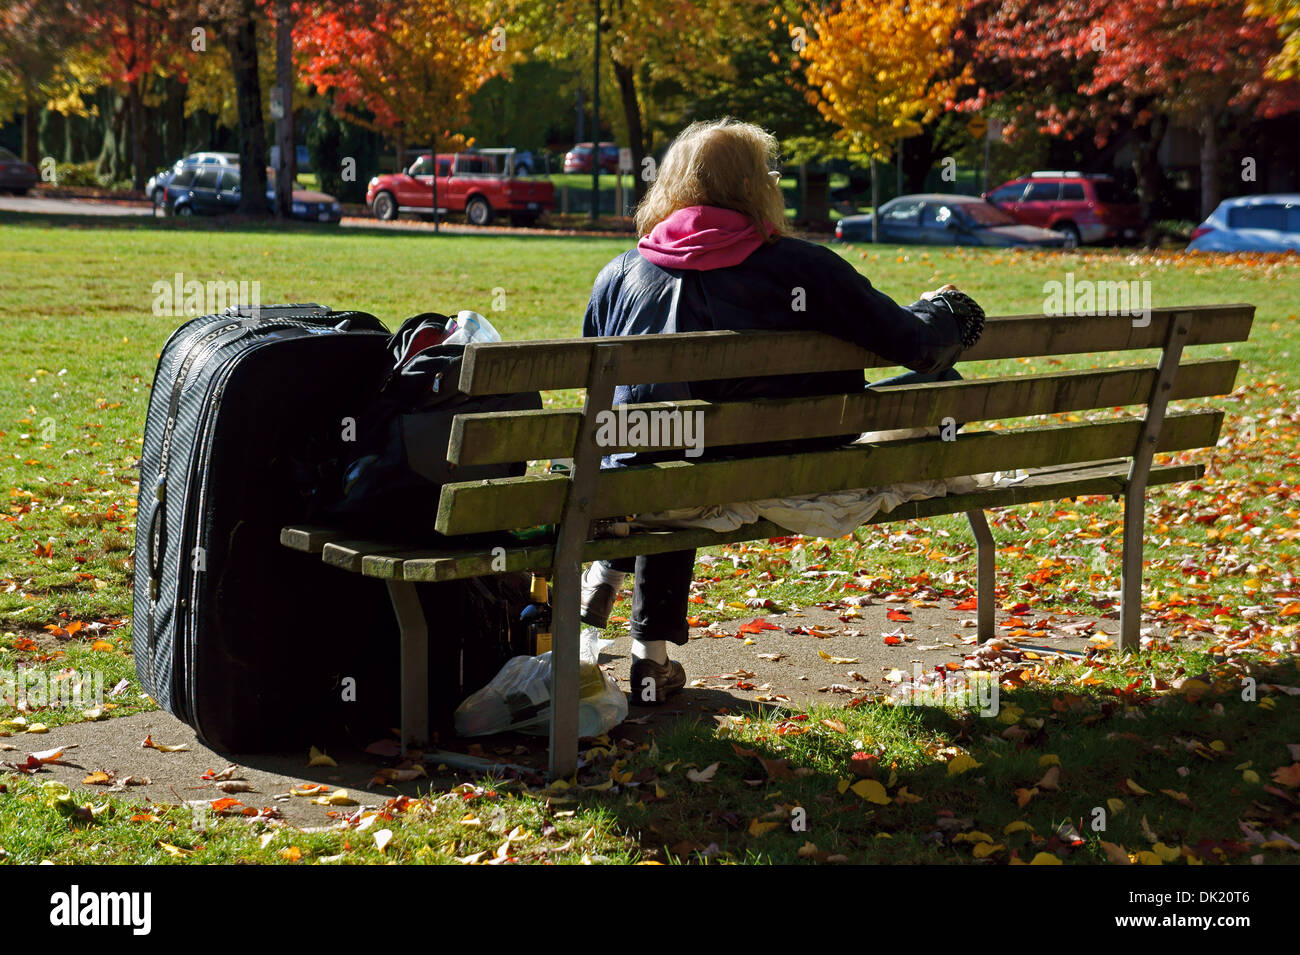 homeless-senior-woman-sitting-on-a-park-